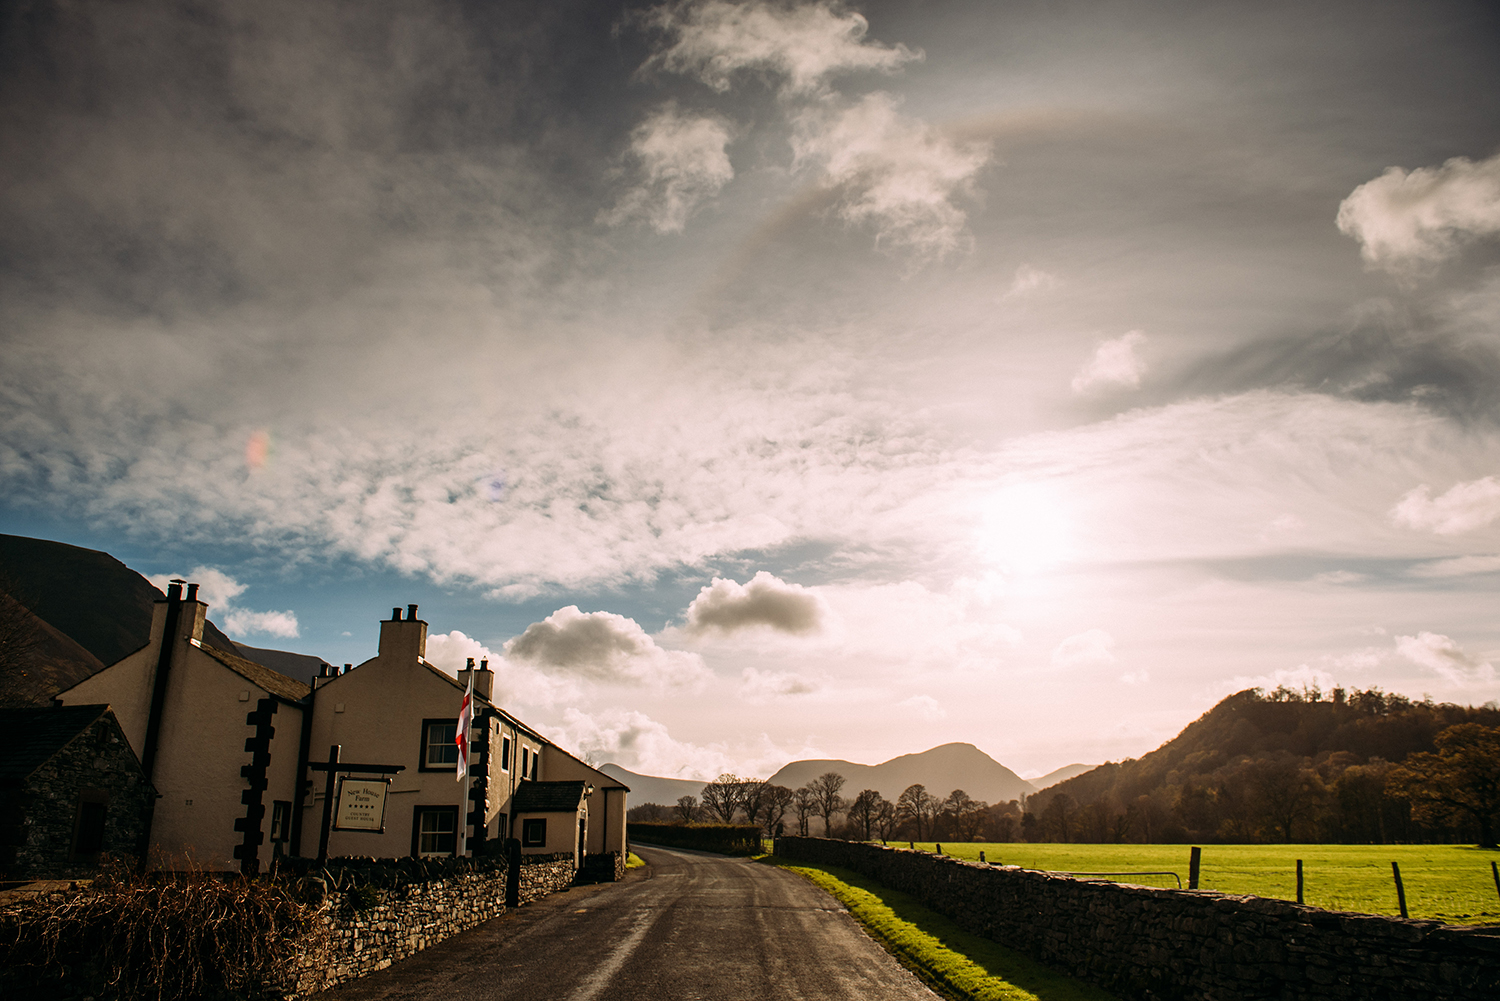 new house farm with moody clouds